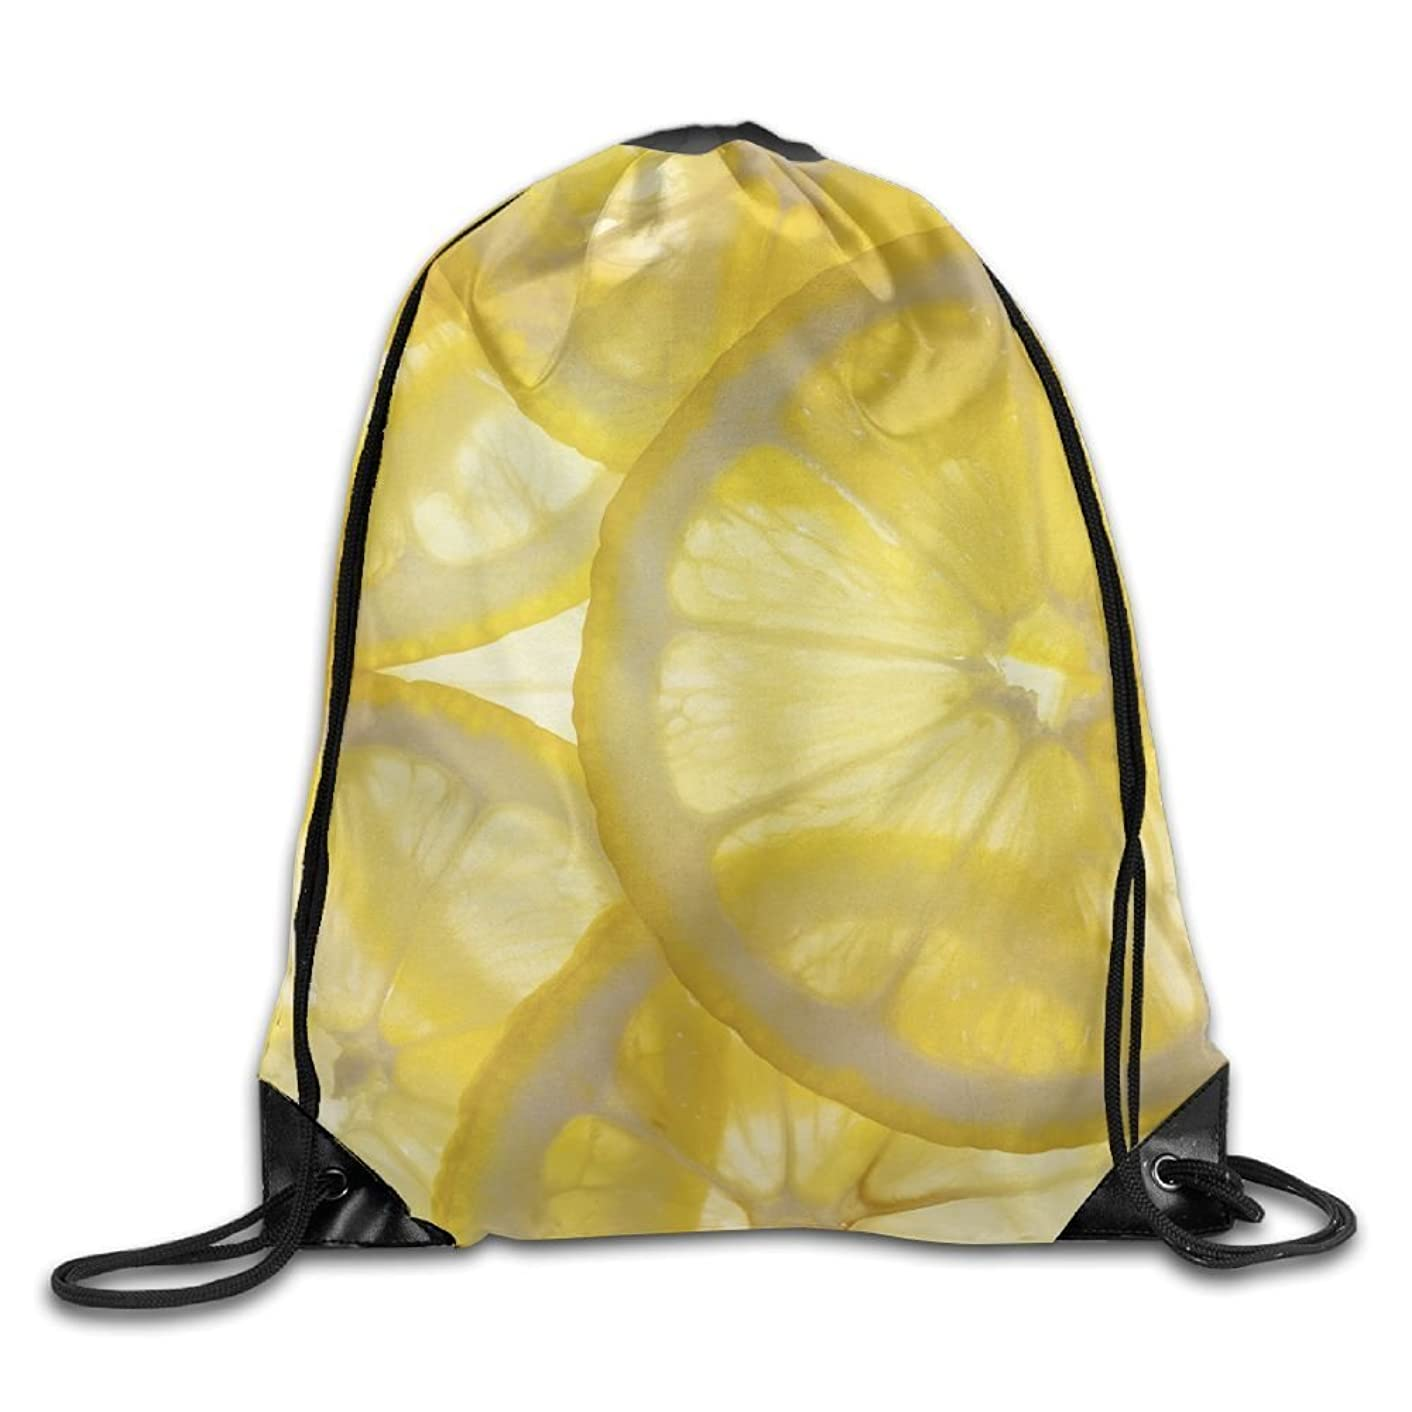 Yifui Bright Lemon Slices Drawstring Bag For Traveling Or Shopping Casual Daypacks School Bags